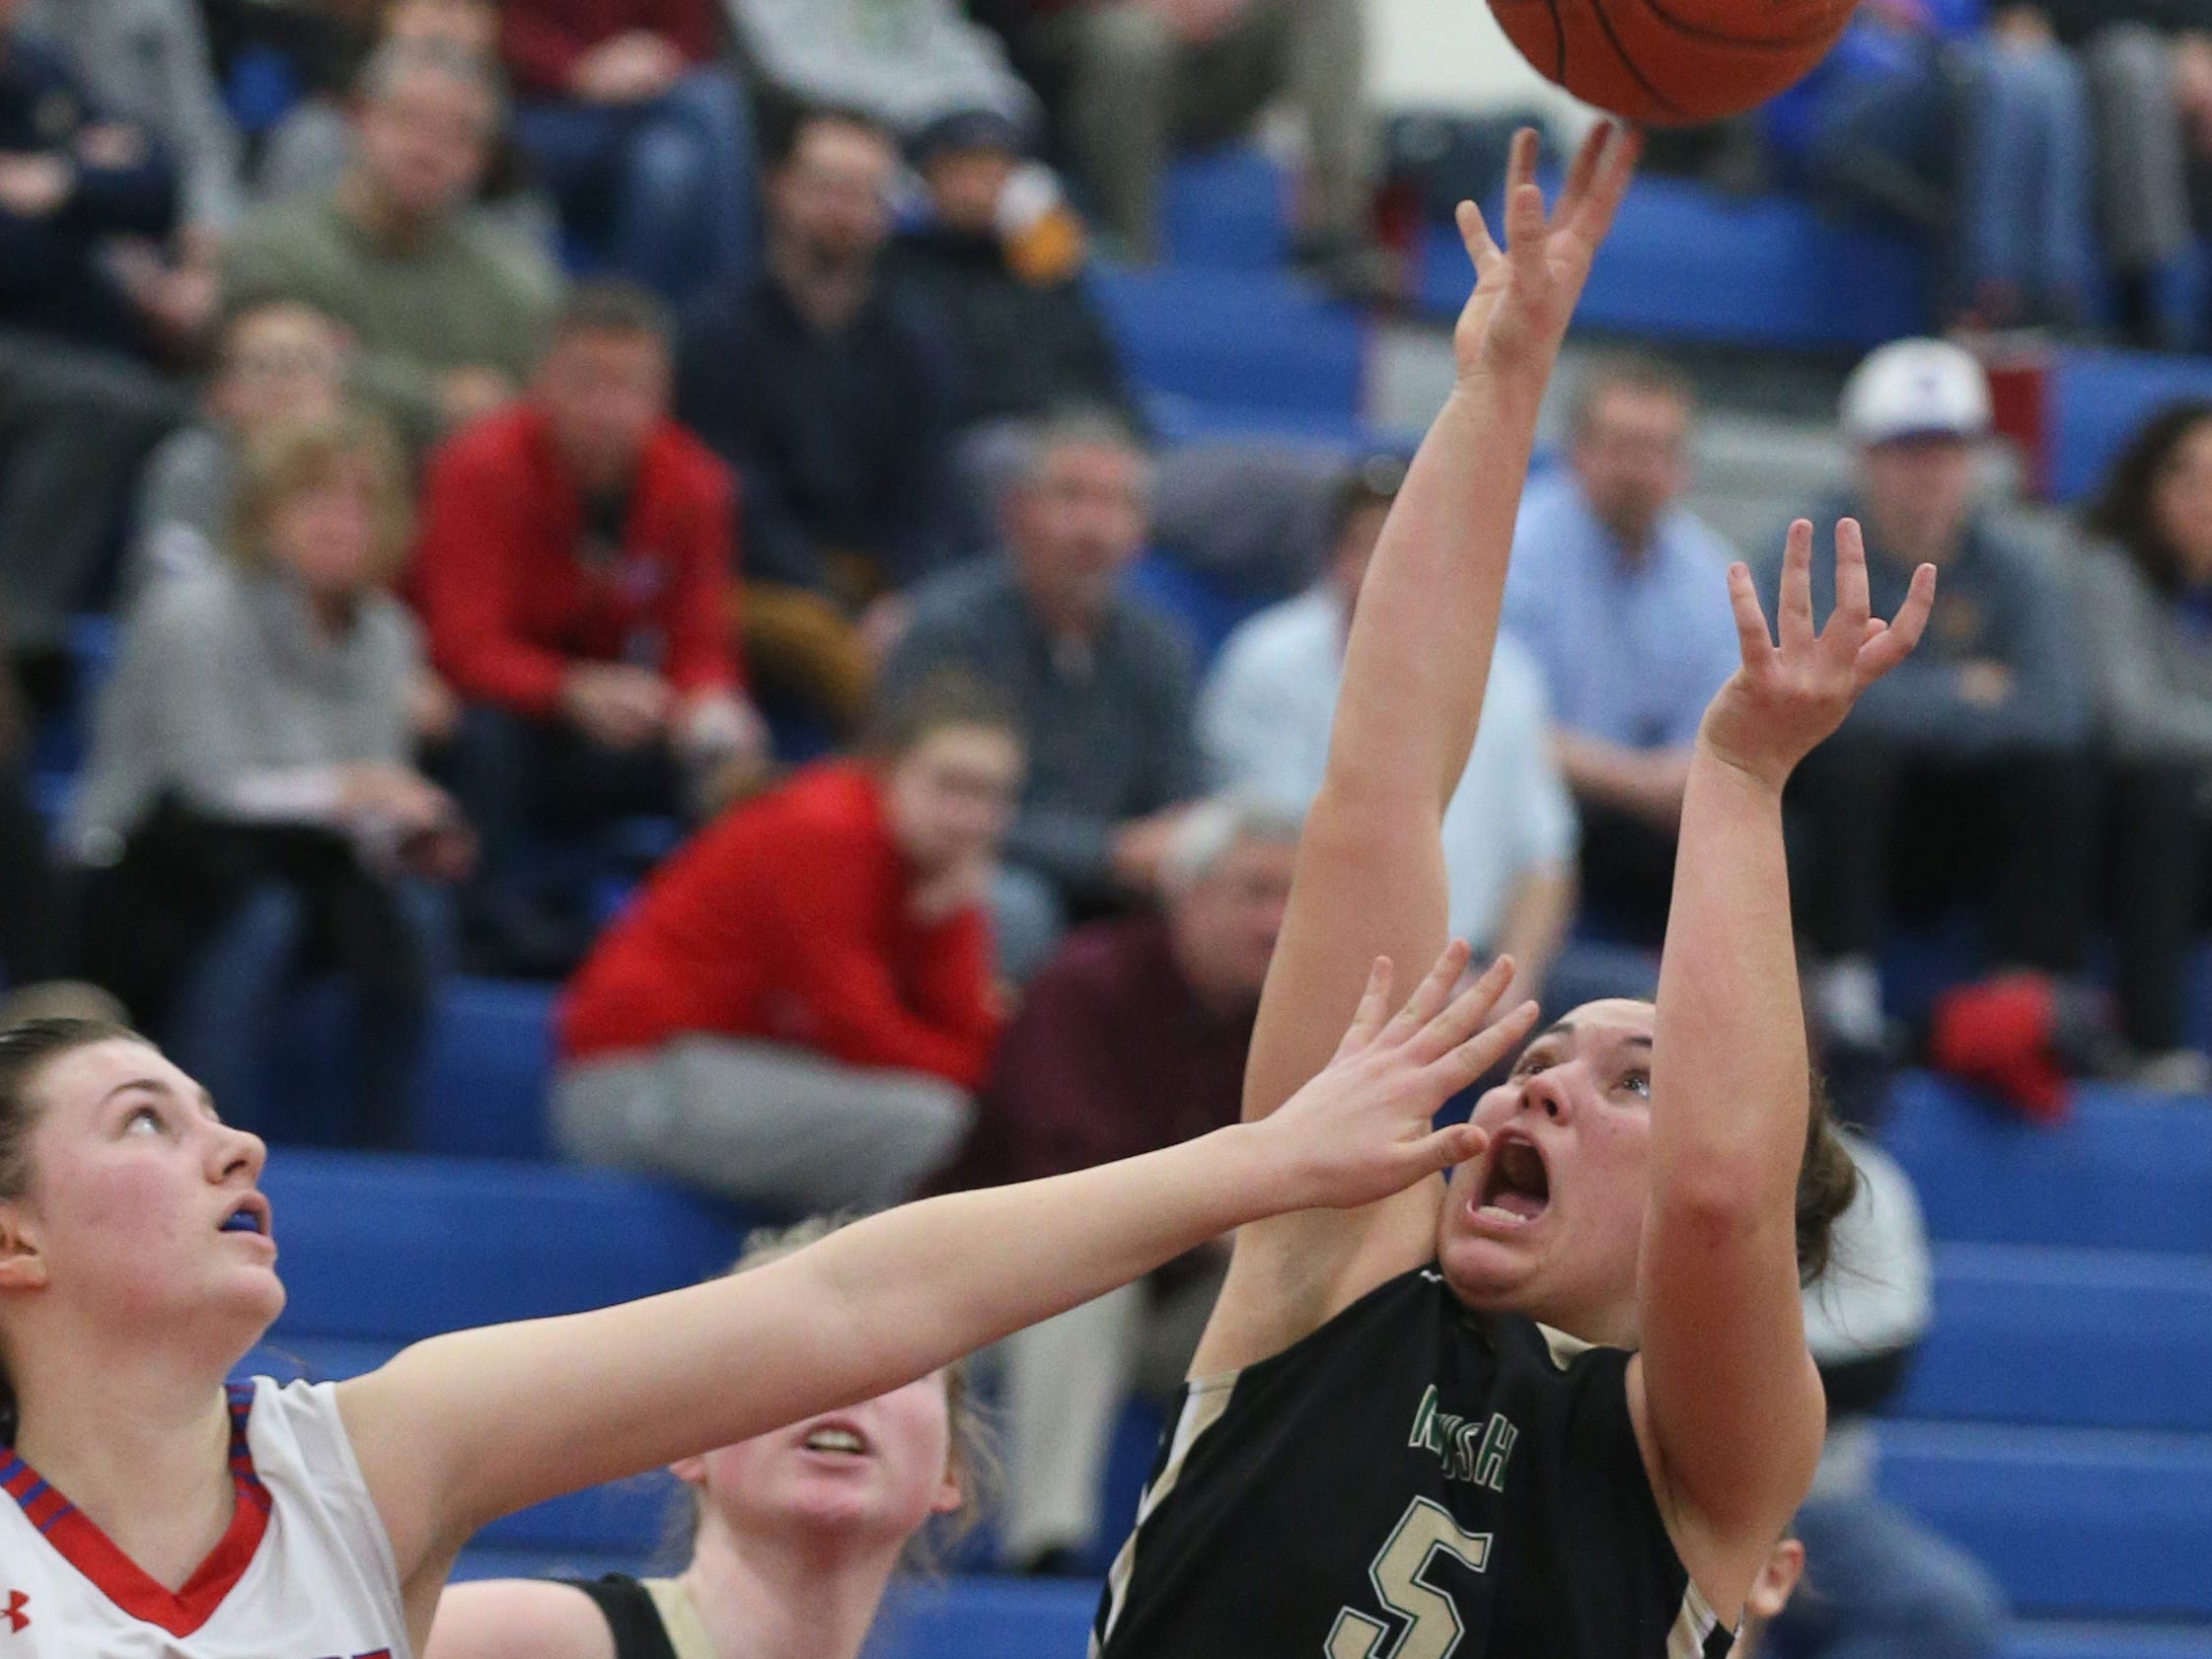 Rush-Henrietta's Kaila Herring, right, puts up a shot as Fairport's Kat Zimmerman defends.